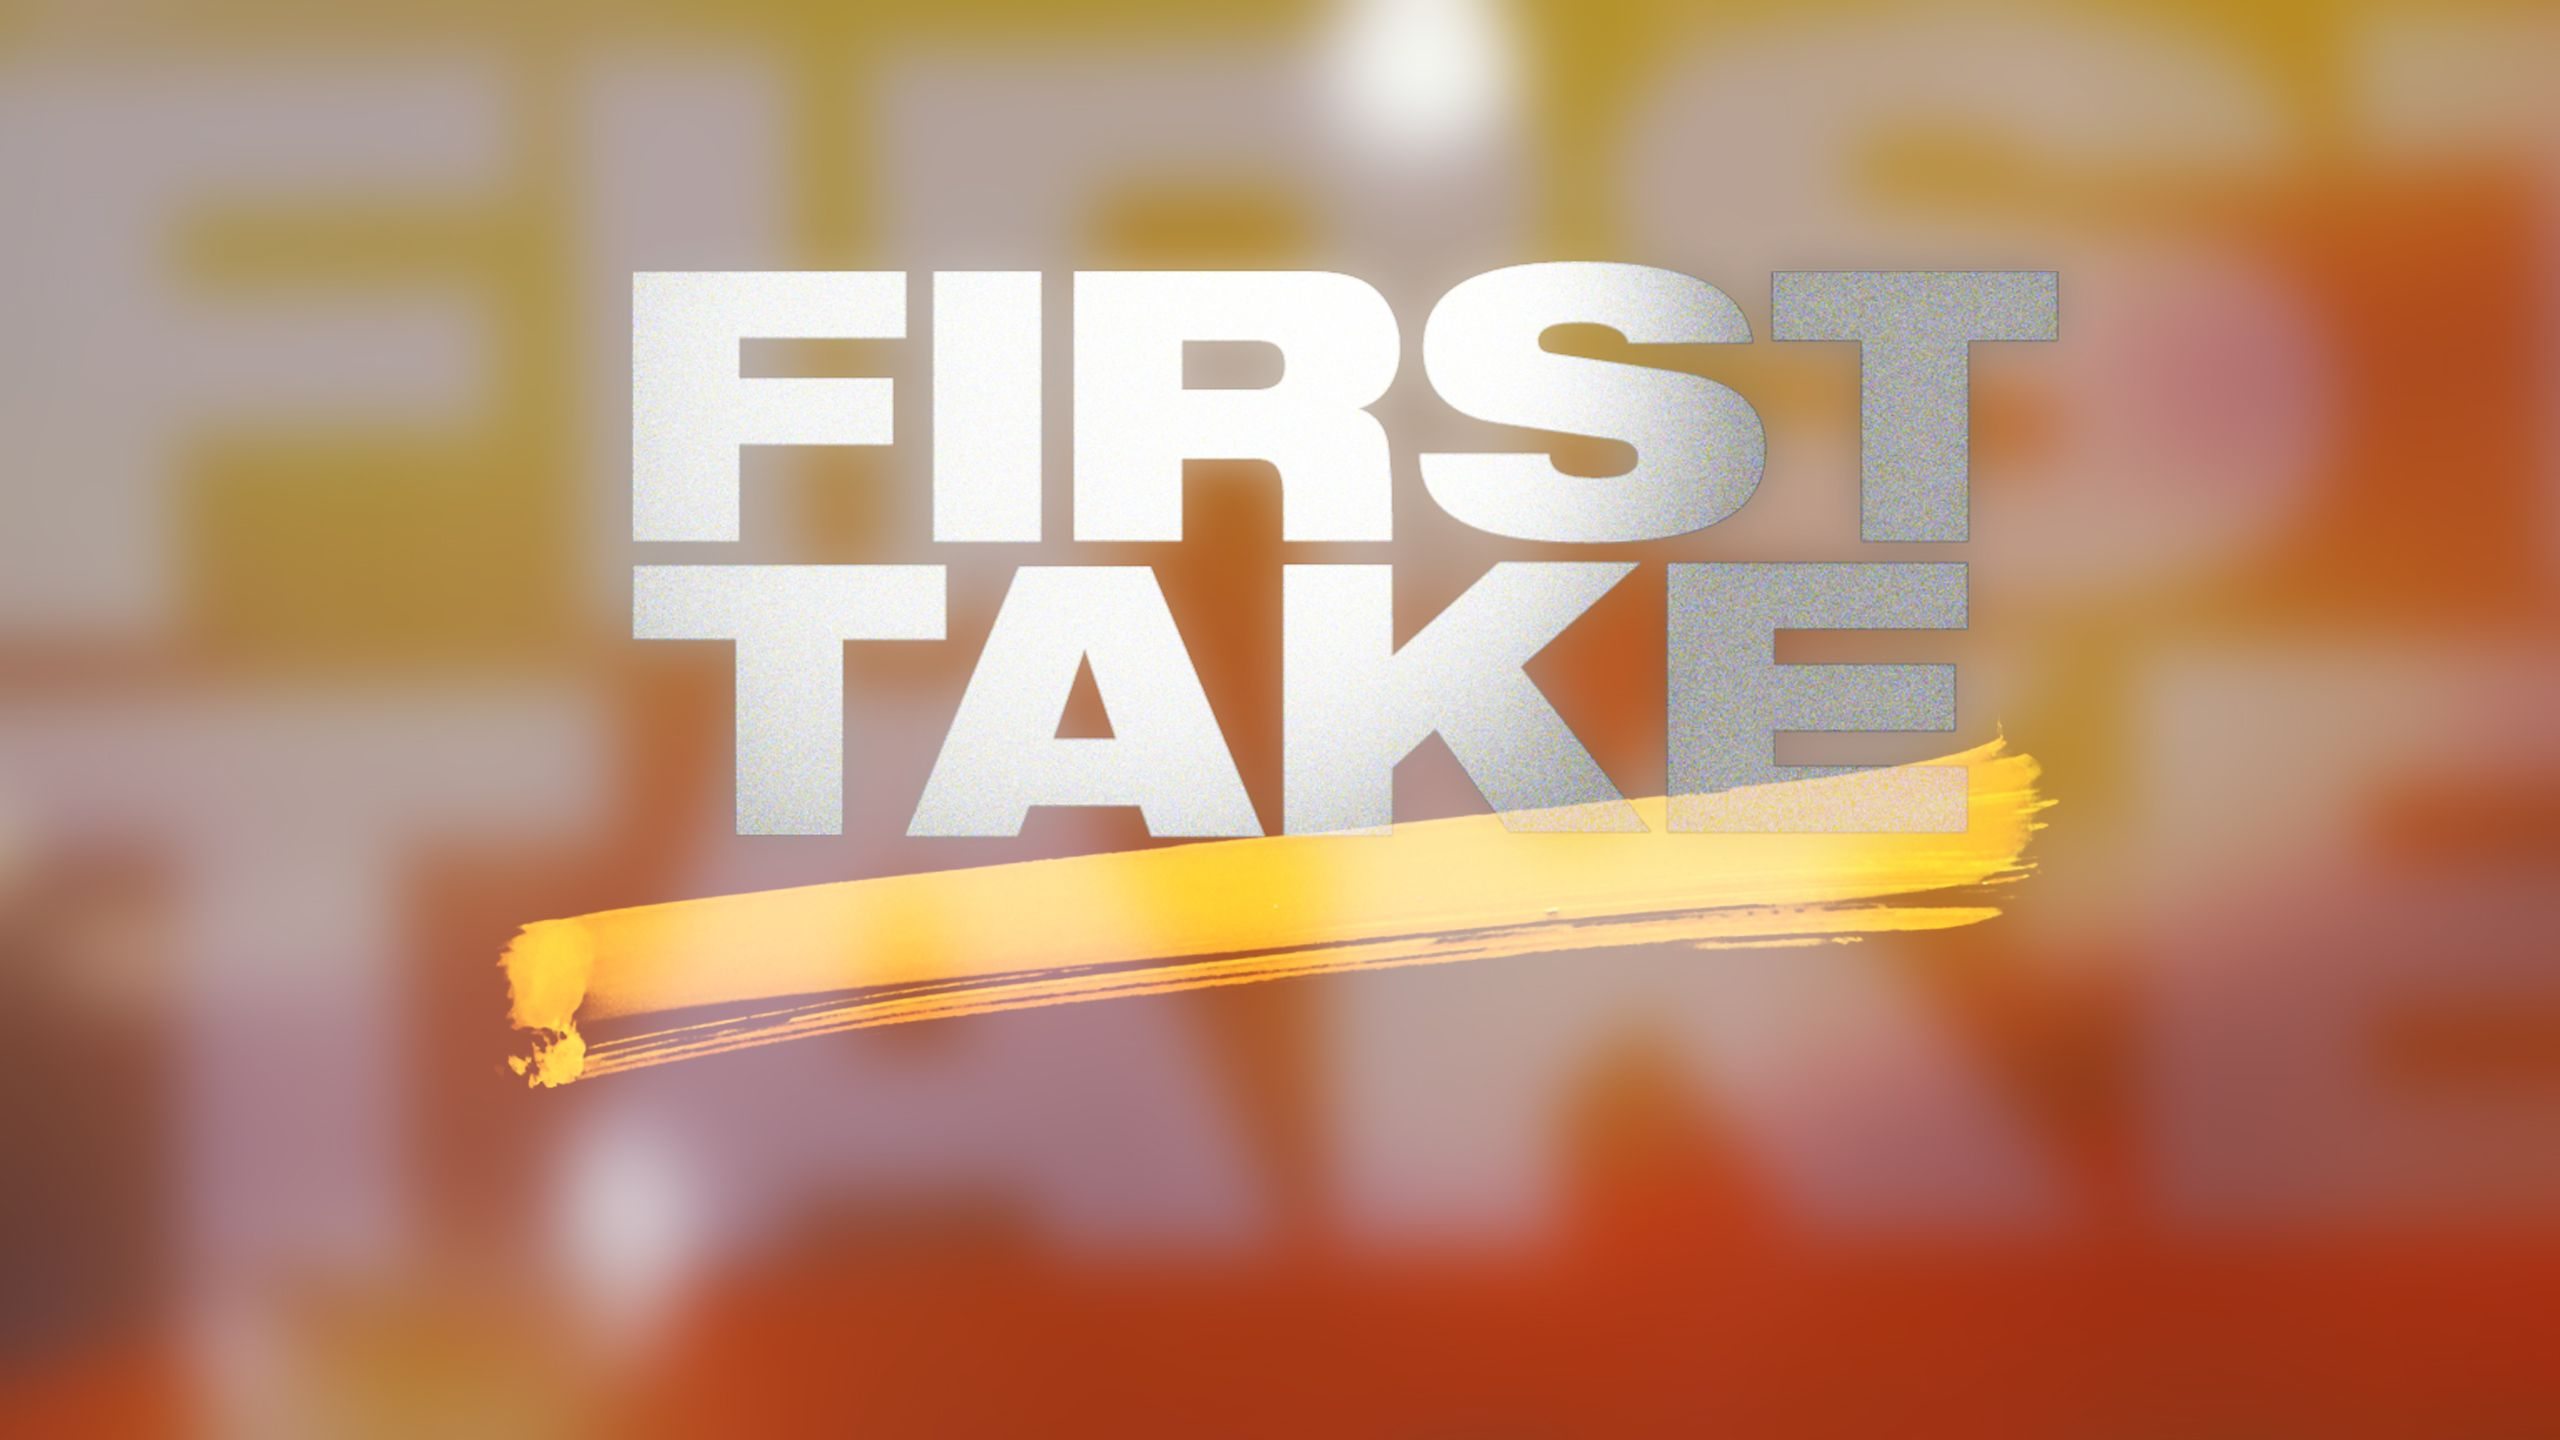 Wed, 2/21 - First Take